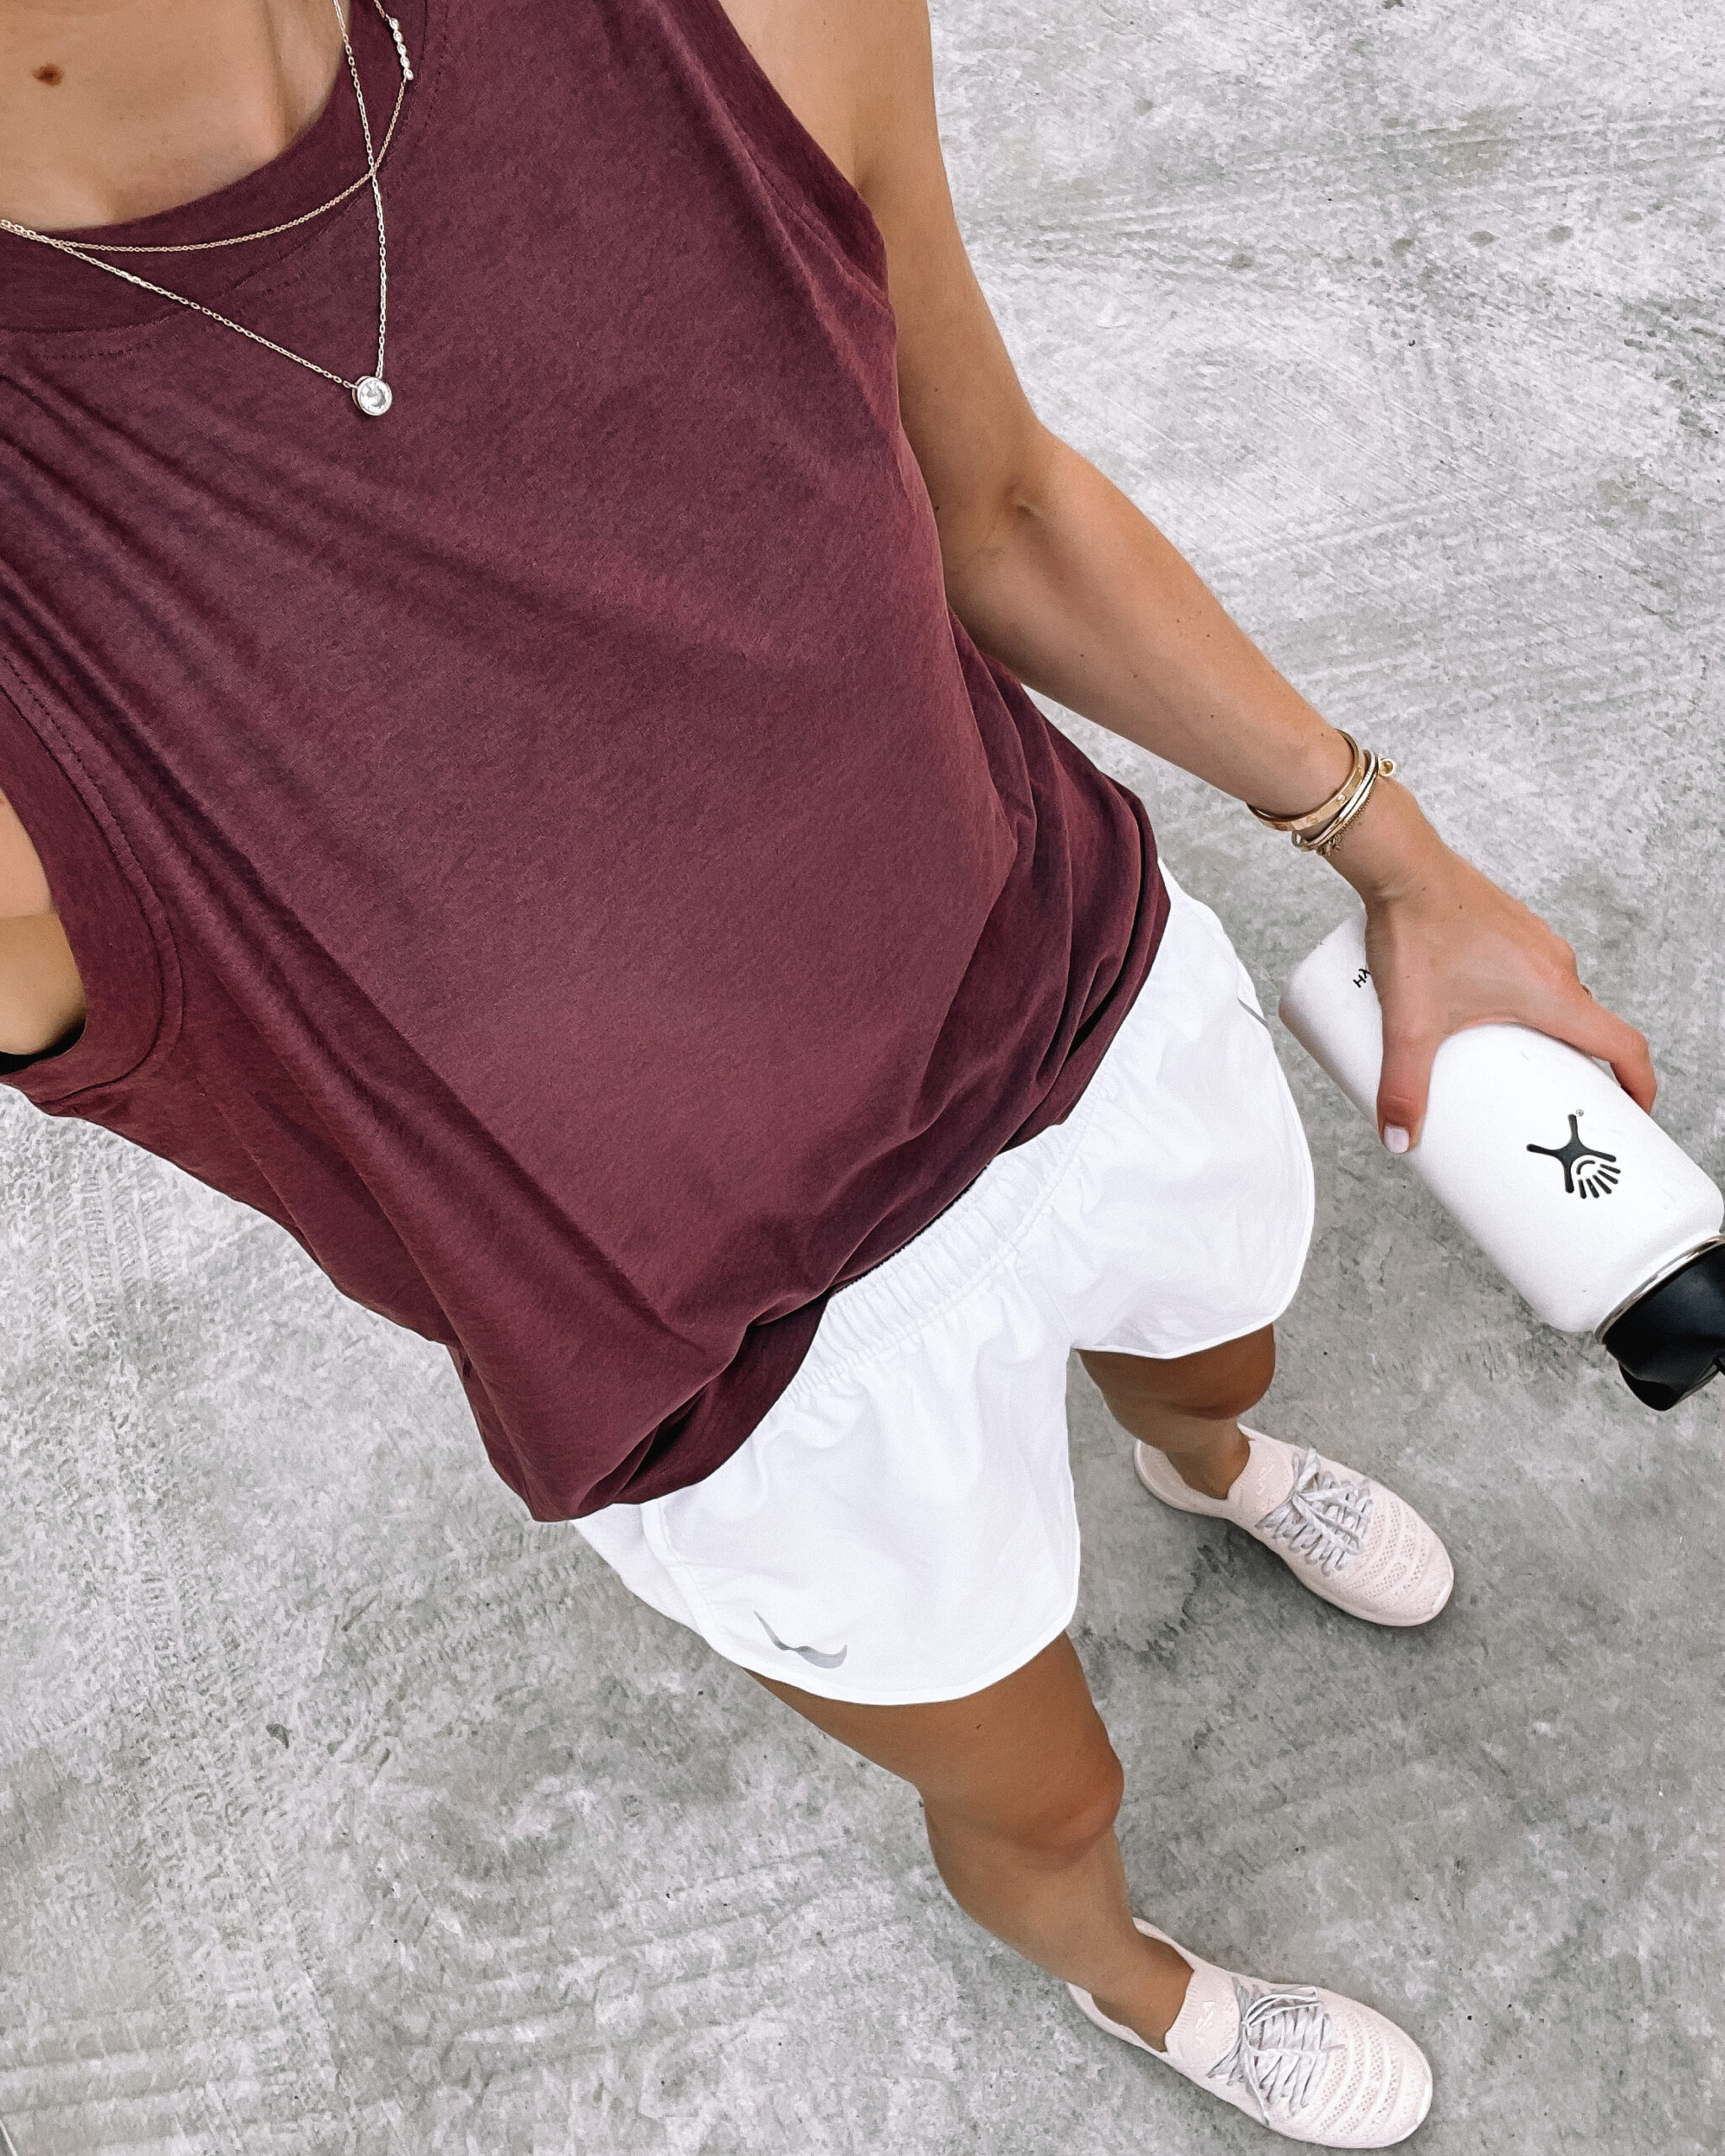 Fashion Jackson Wearing Pink Muscle Workout Tank White Nike Running Shorts With Liner Blush APL Sneakers White Hydroflast Womens Workout Outfit